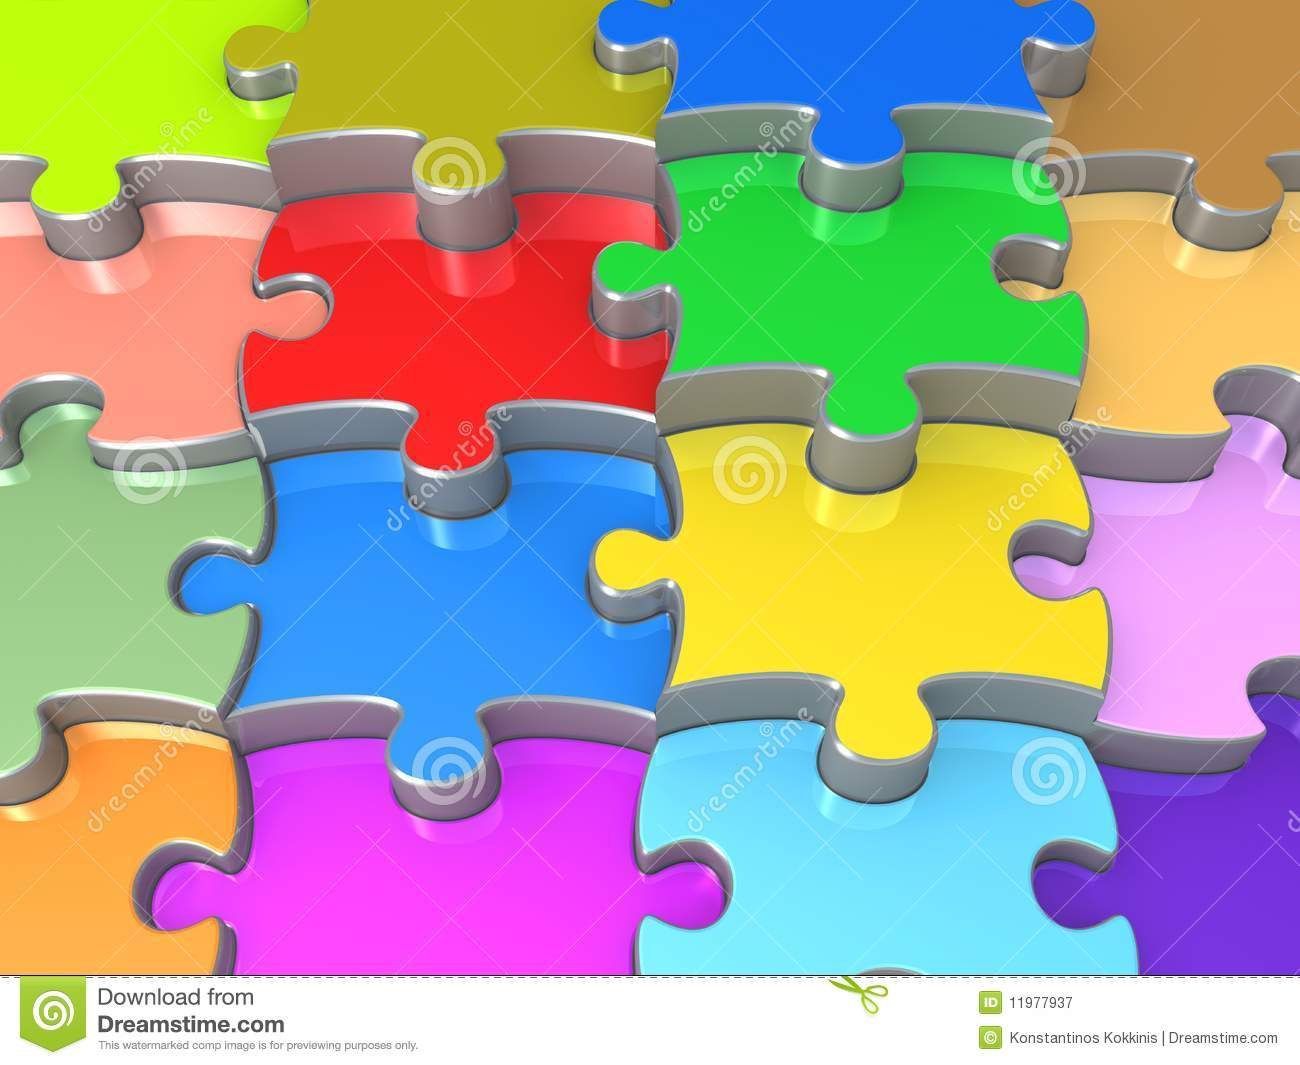 Download 3D Jigsaw Puzzle Stock Illustration Of Color